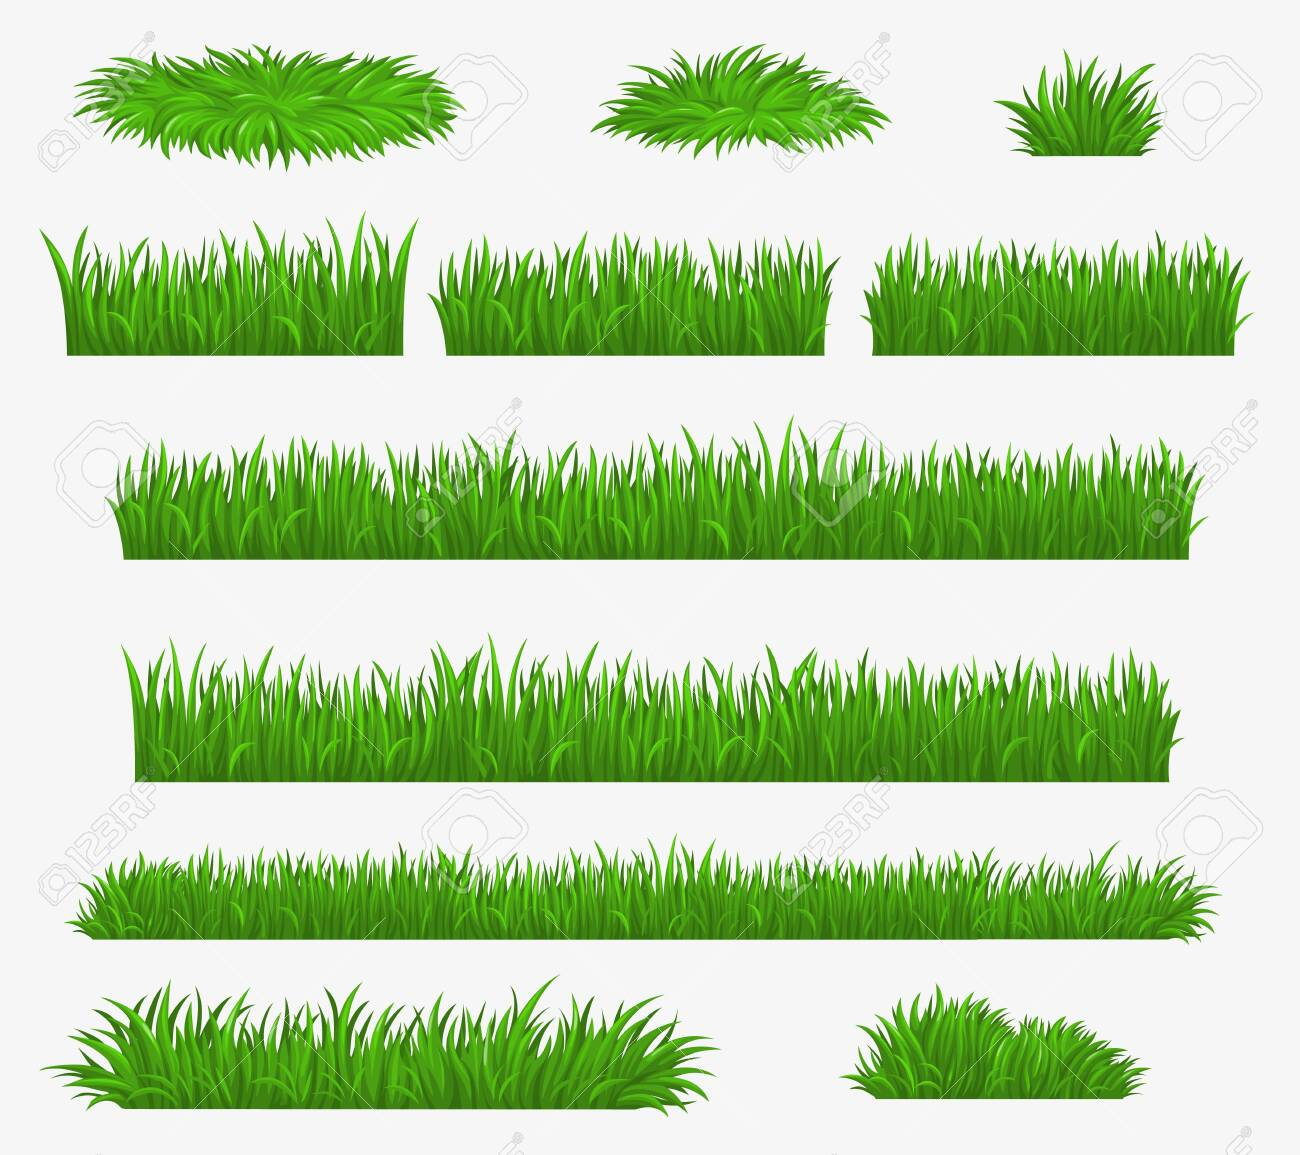 Green grass blades borders and landscaping constructor plants, vector isolated realistic icons. Meadow lawn, park or farm green grass hedges - 145104409